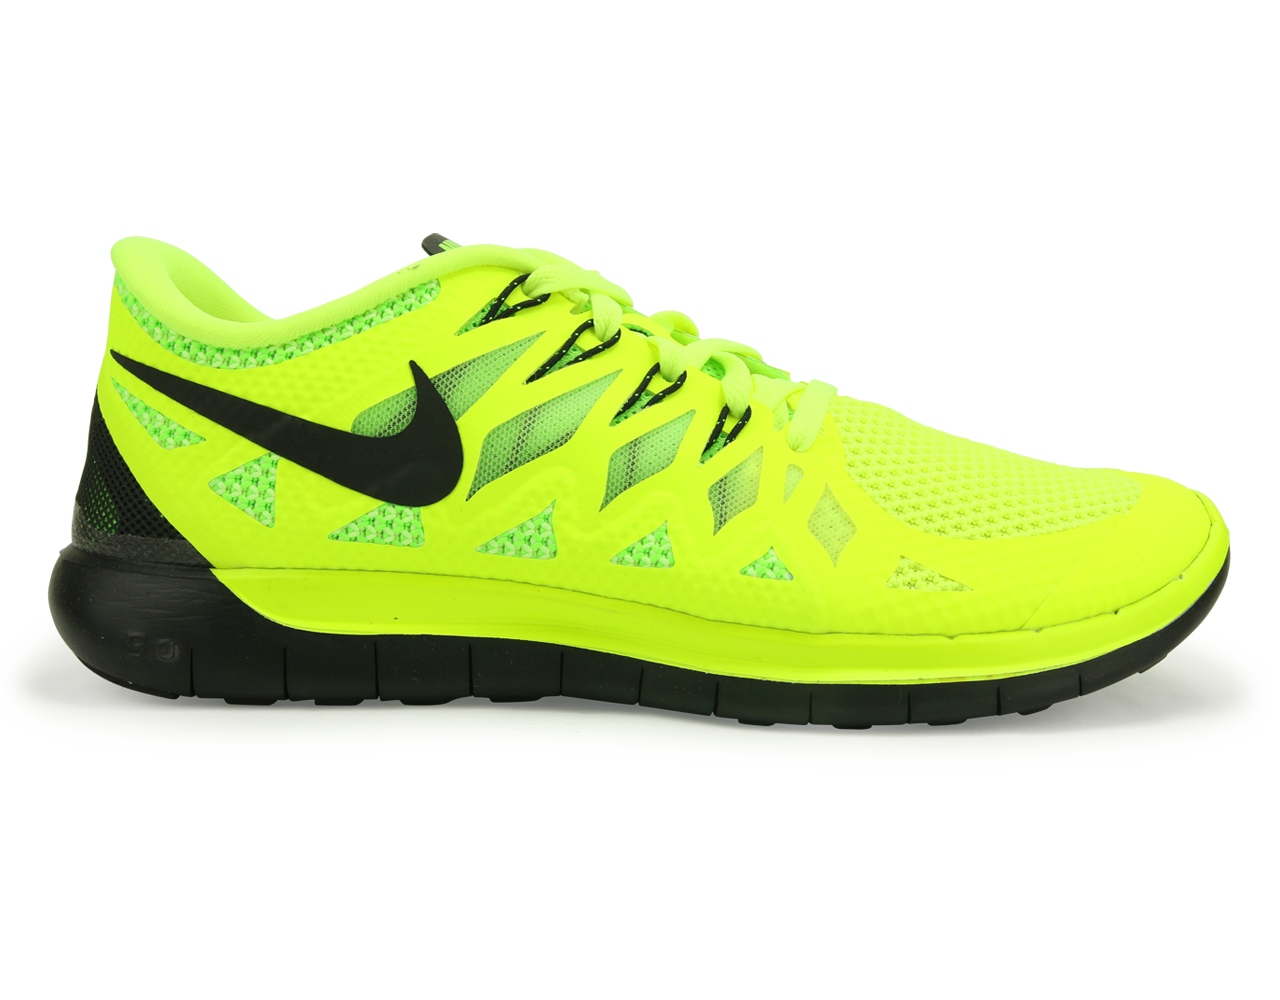 Cheap Outlet Nike Free 5.0 Mens Green Yellow Shoes NSK2253